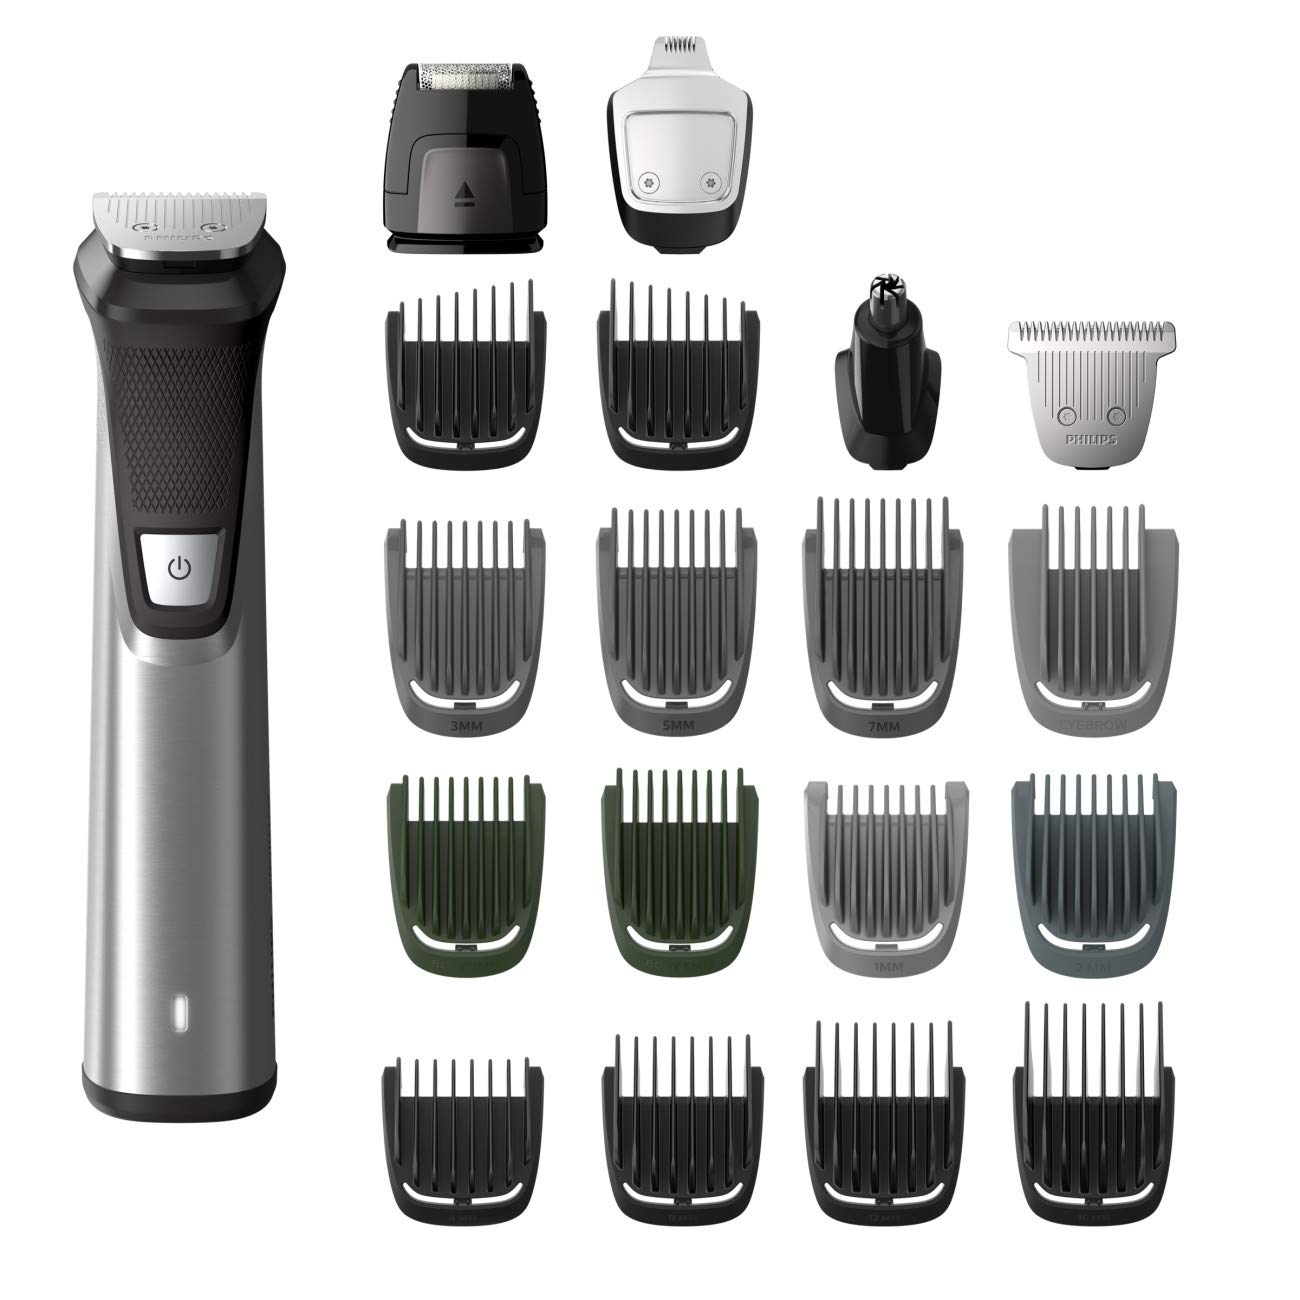 Shaver for hair cuts: Philips Norelco Multi Groomer MG7750/49-23 piece, beard, body, face, nose, and ear hair trimmer, shaver, and clipper